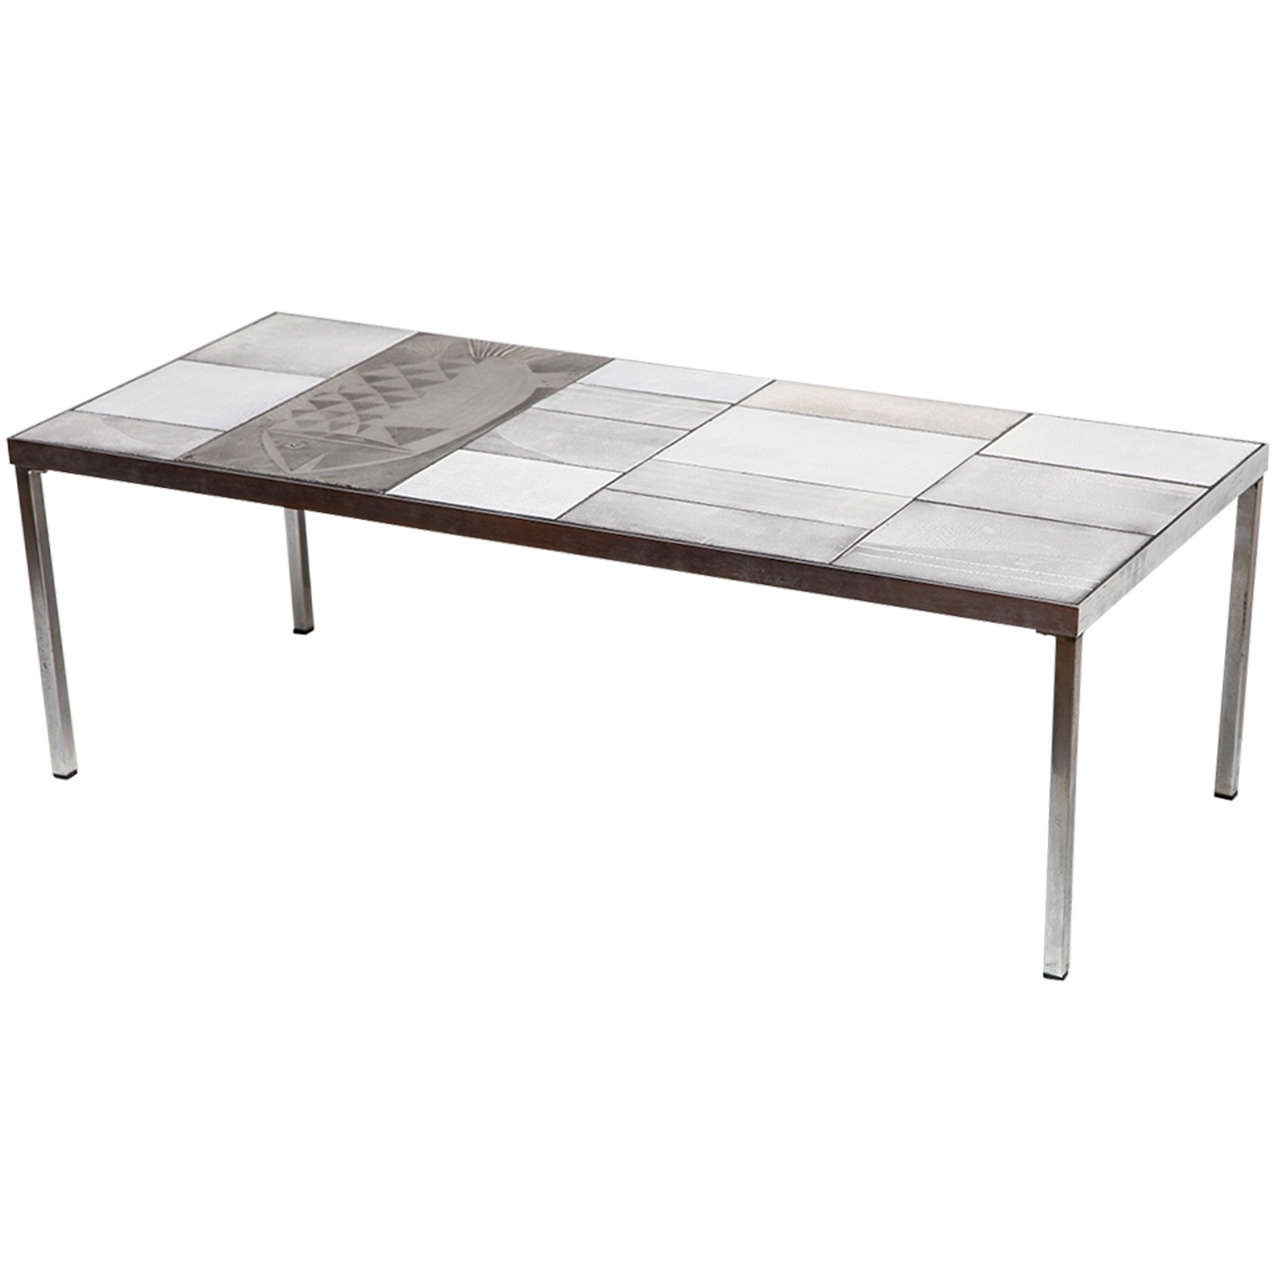 Fine And Rare Coffee Table By Roger Capron At 1stdibs